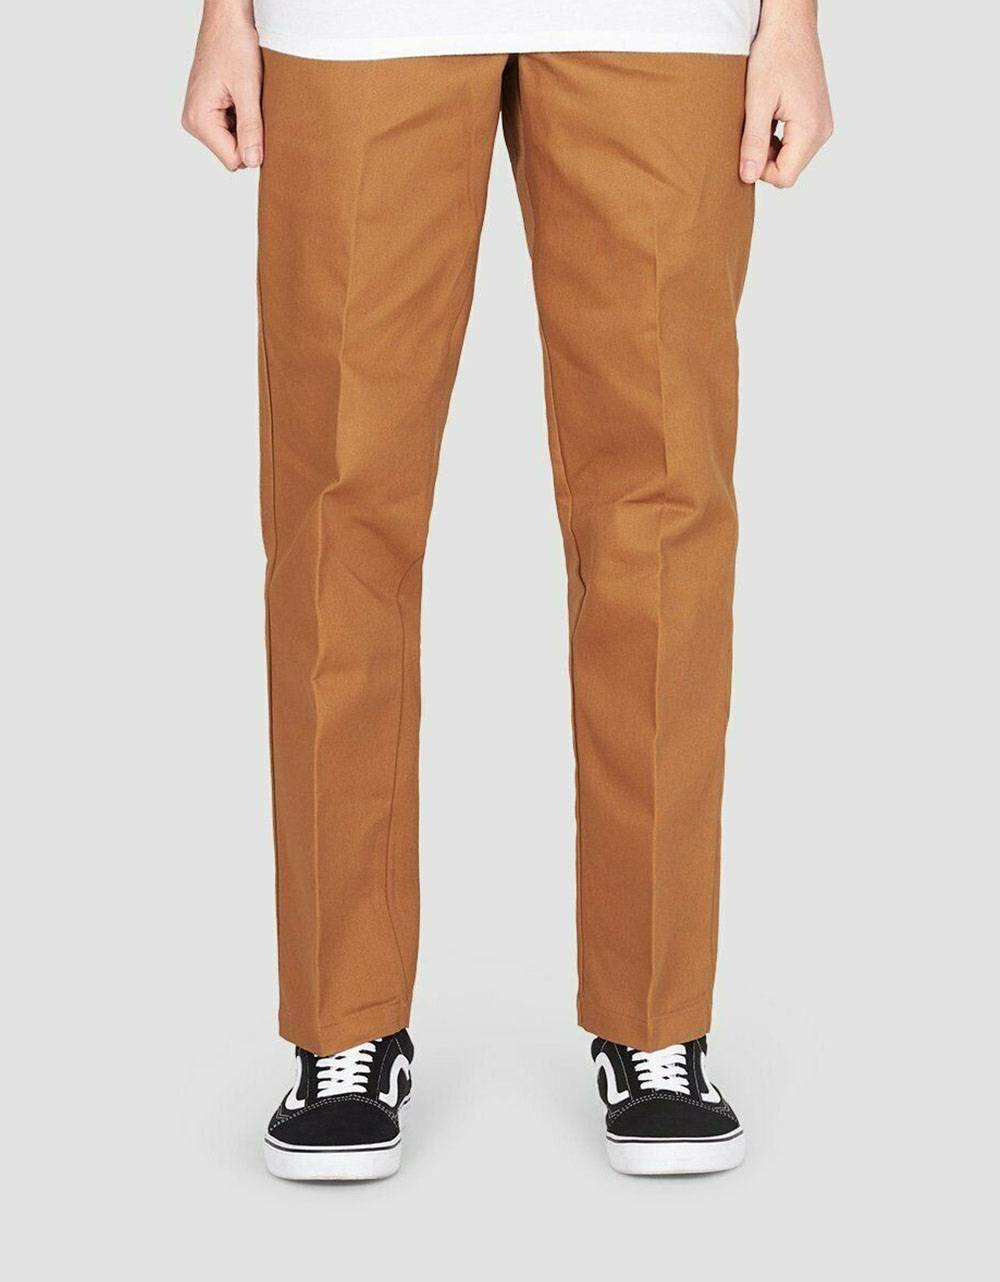 Dickies Slim straight work pant 873 - Brown duck Dickies Pant 76,00 €